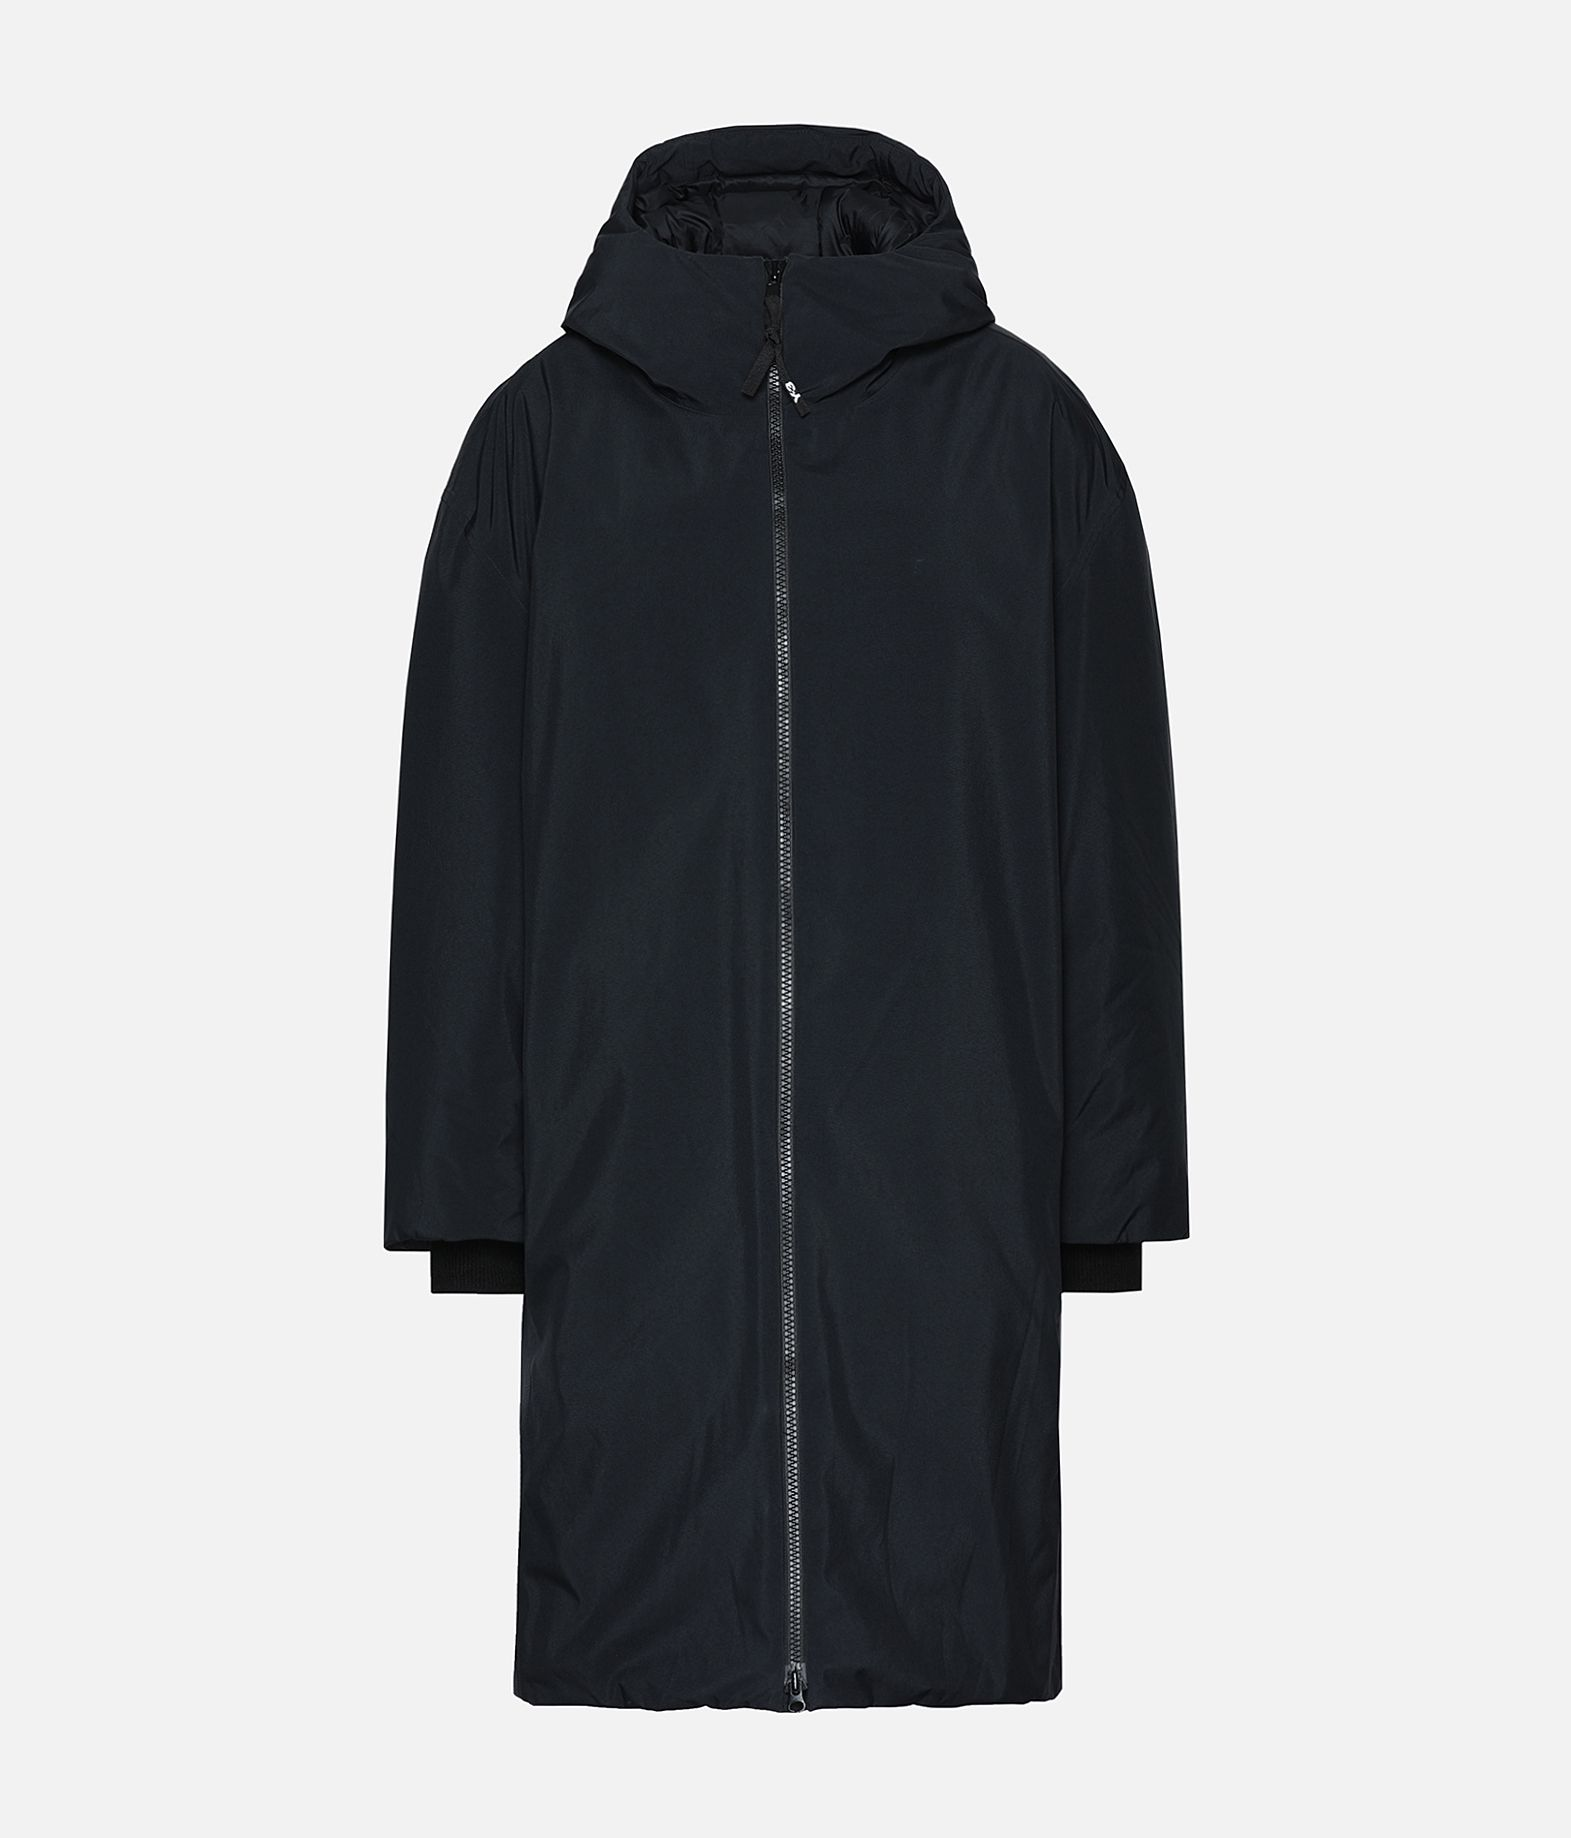 Y-3 Y-3 GORE-TEX Down Parka Jacket Woman f